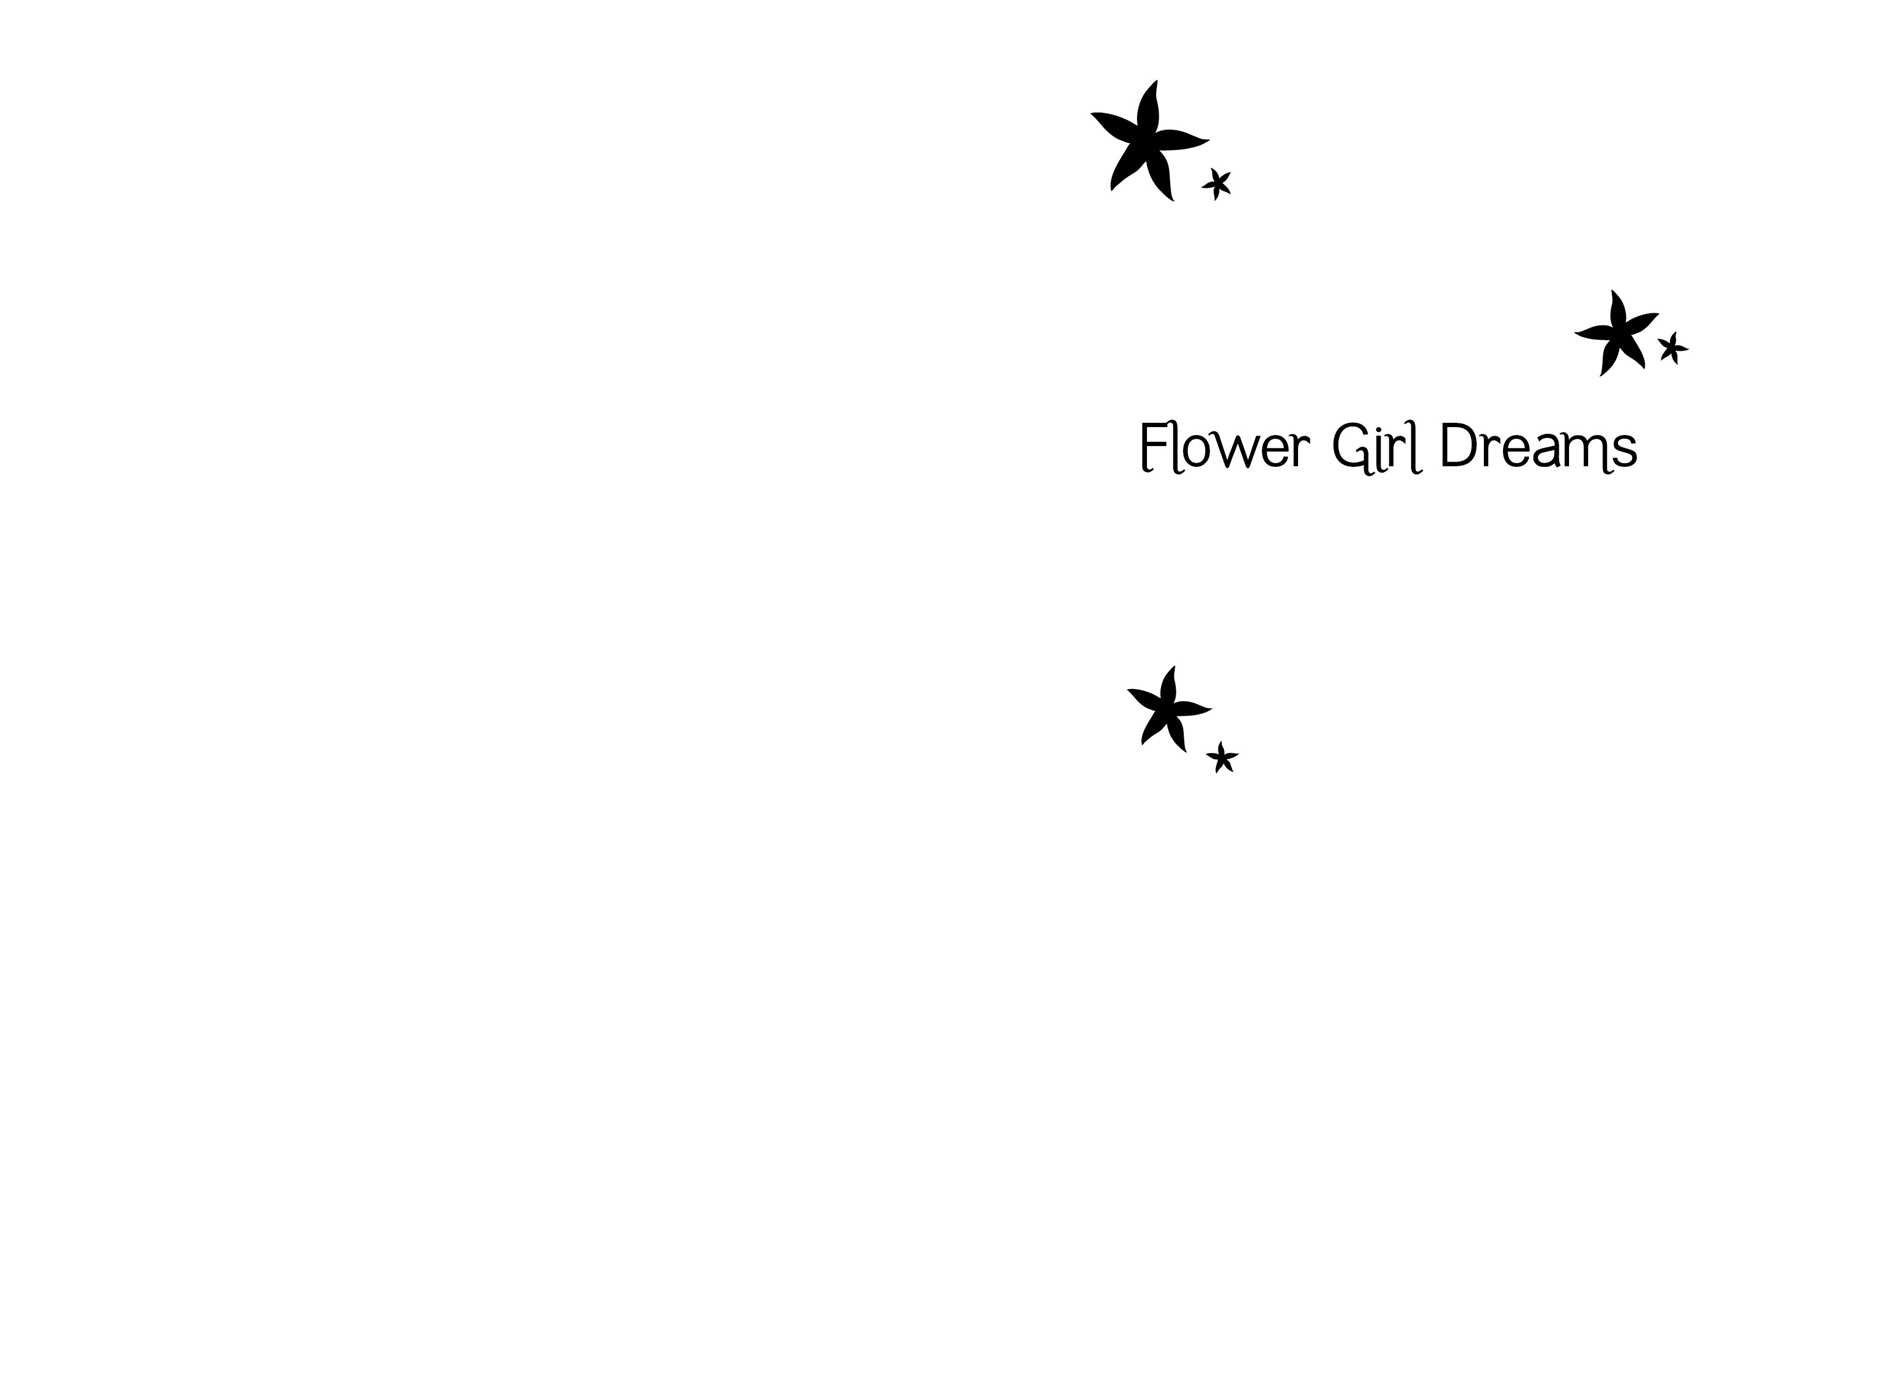 Flower girl dreams 9781481440844.in03